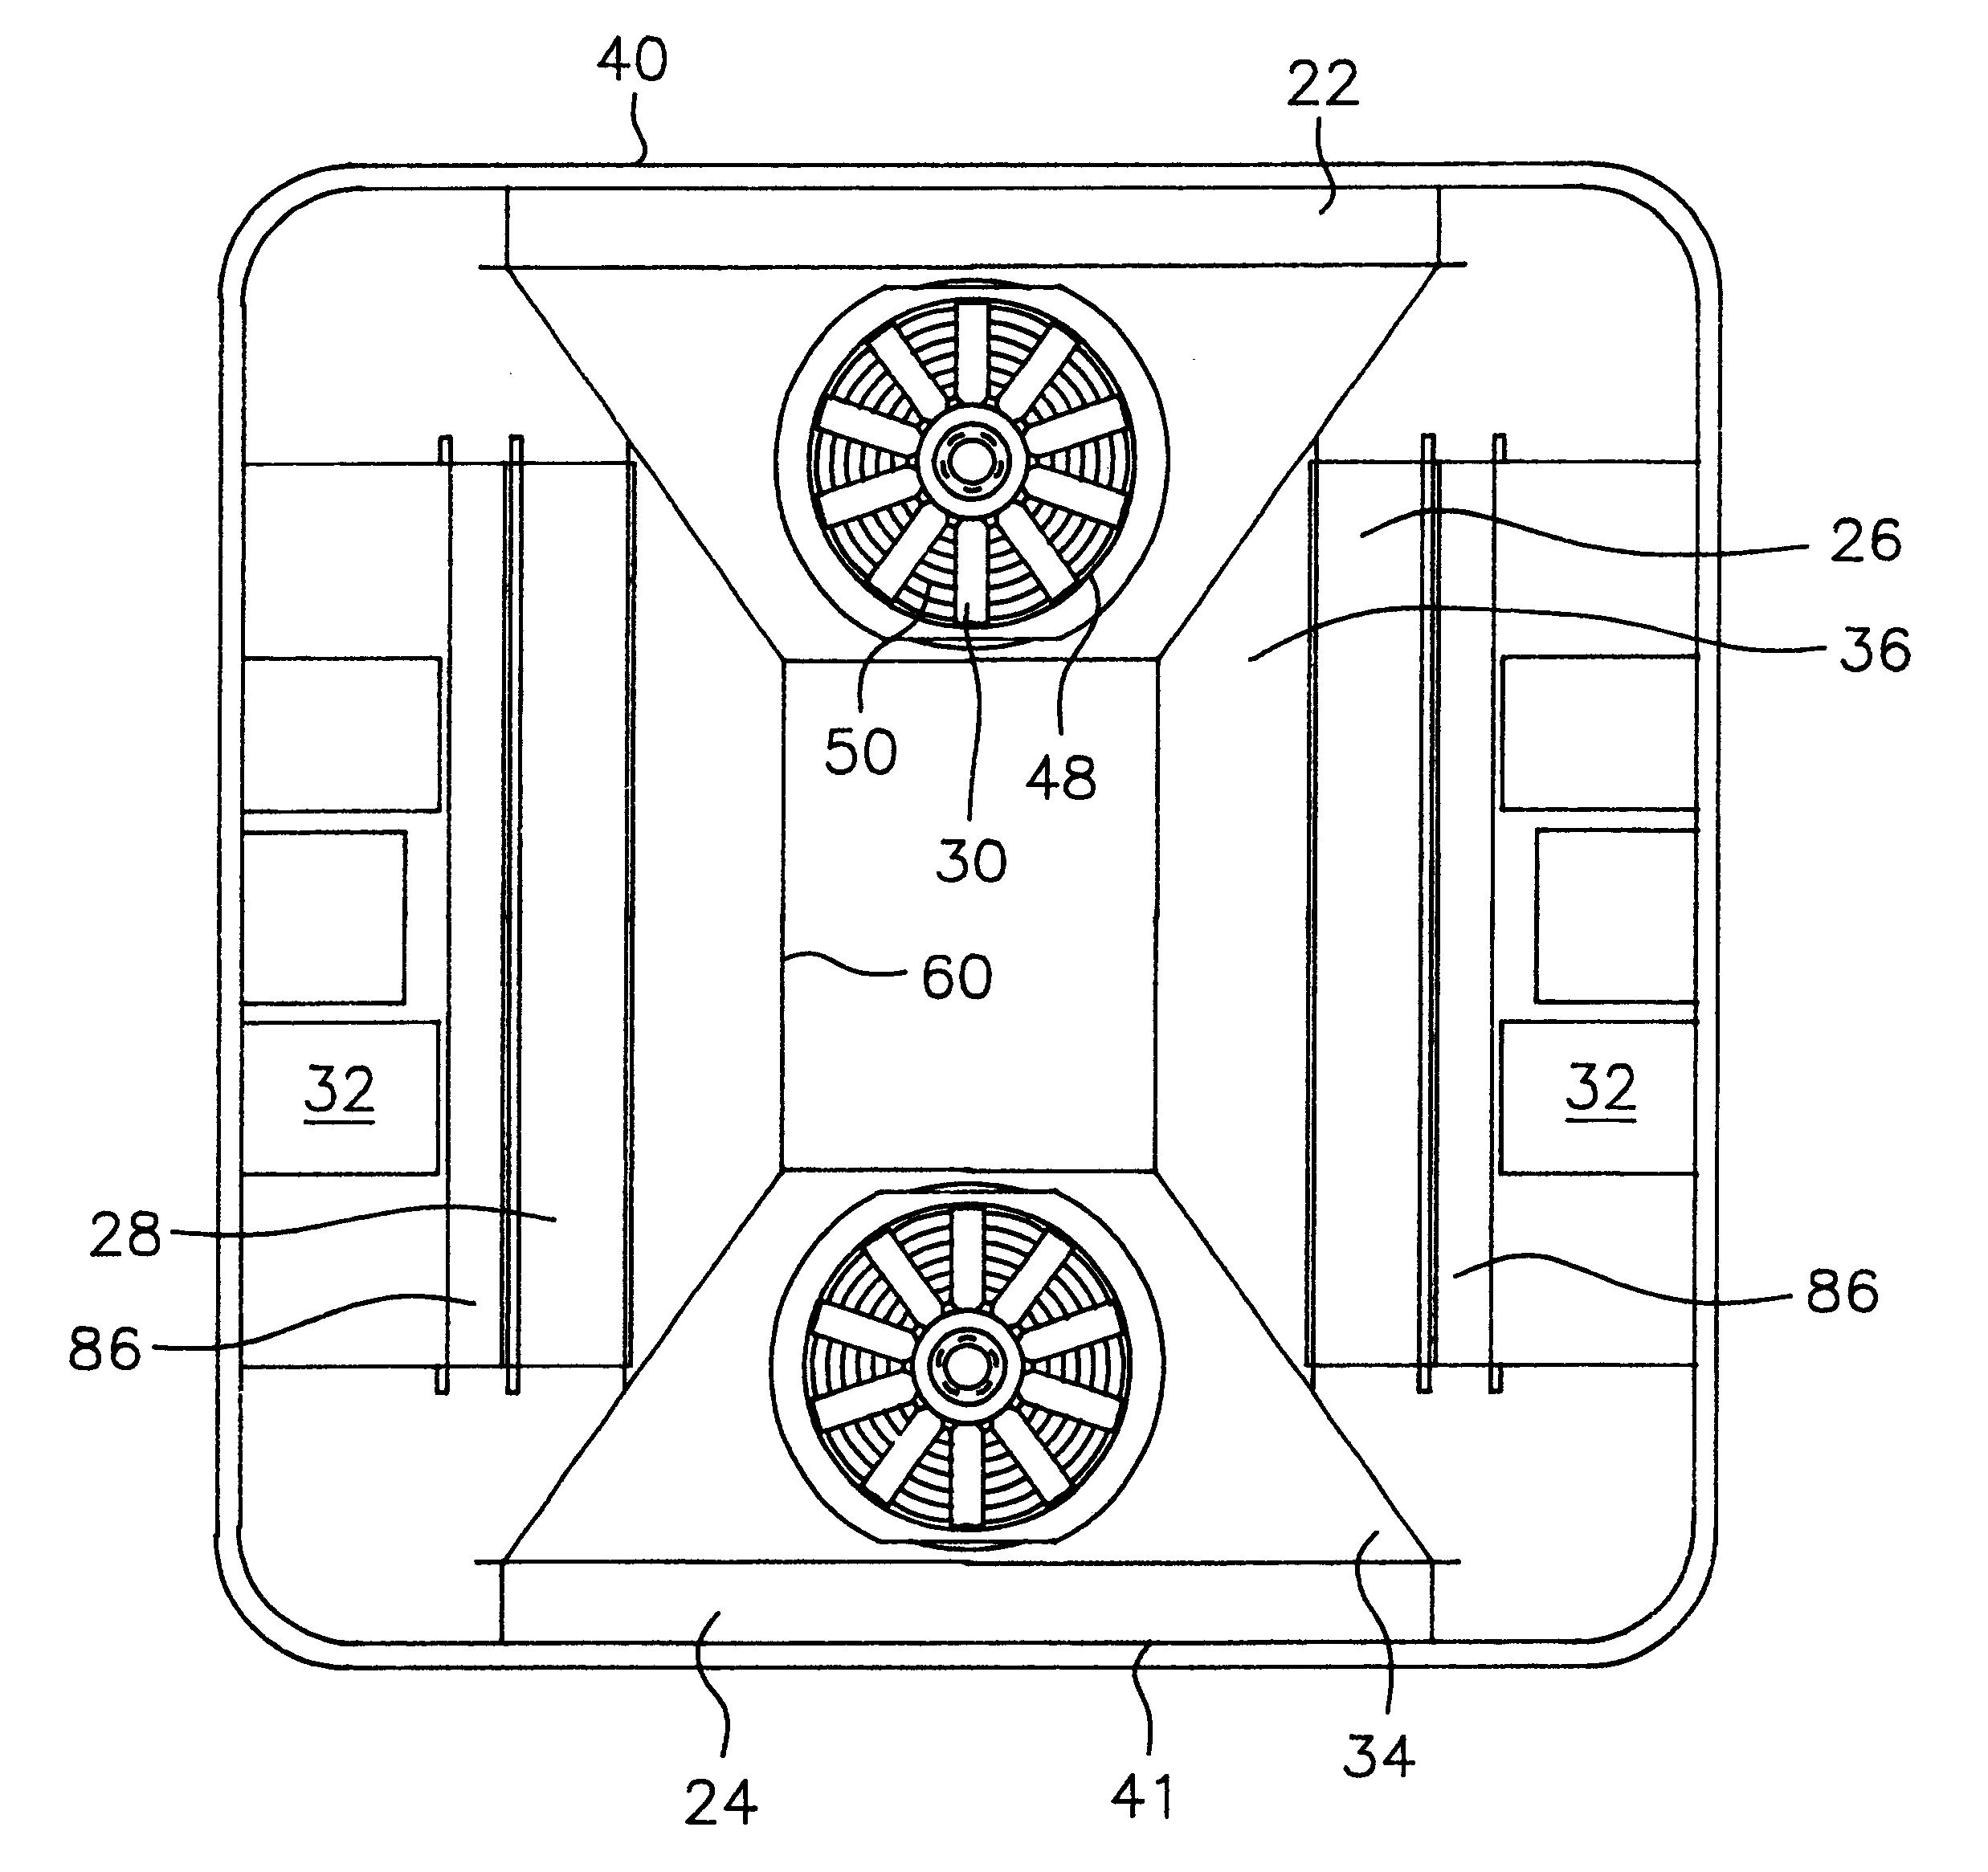 Patent US6295826 - Self-contained rooftop HVAC unit - Google Patents